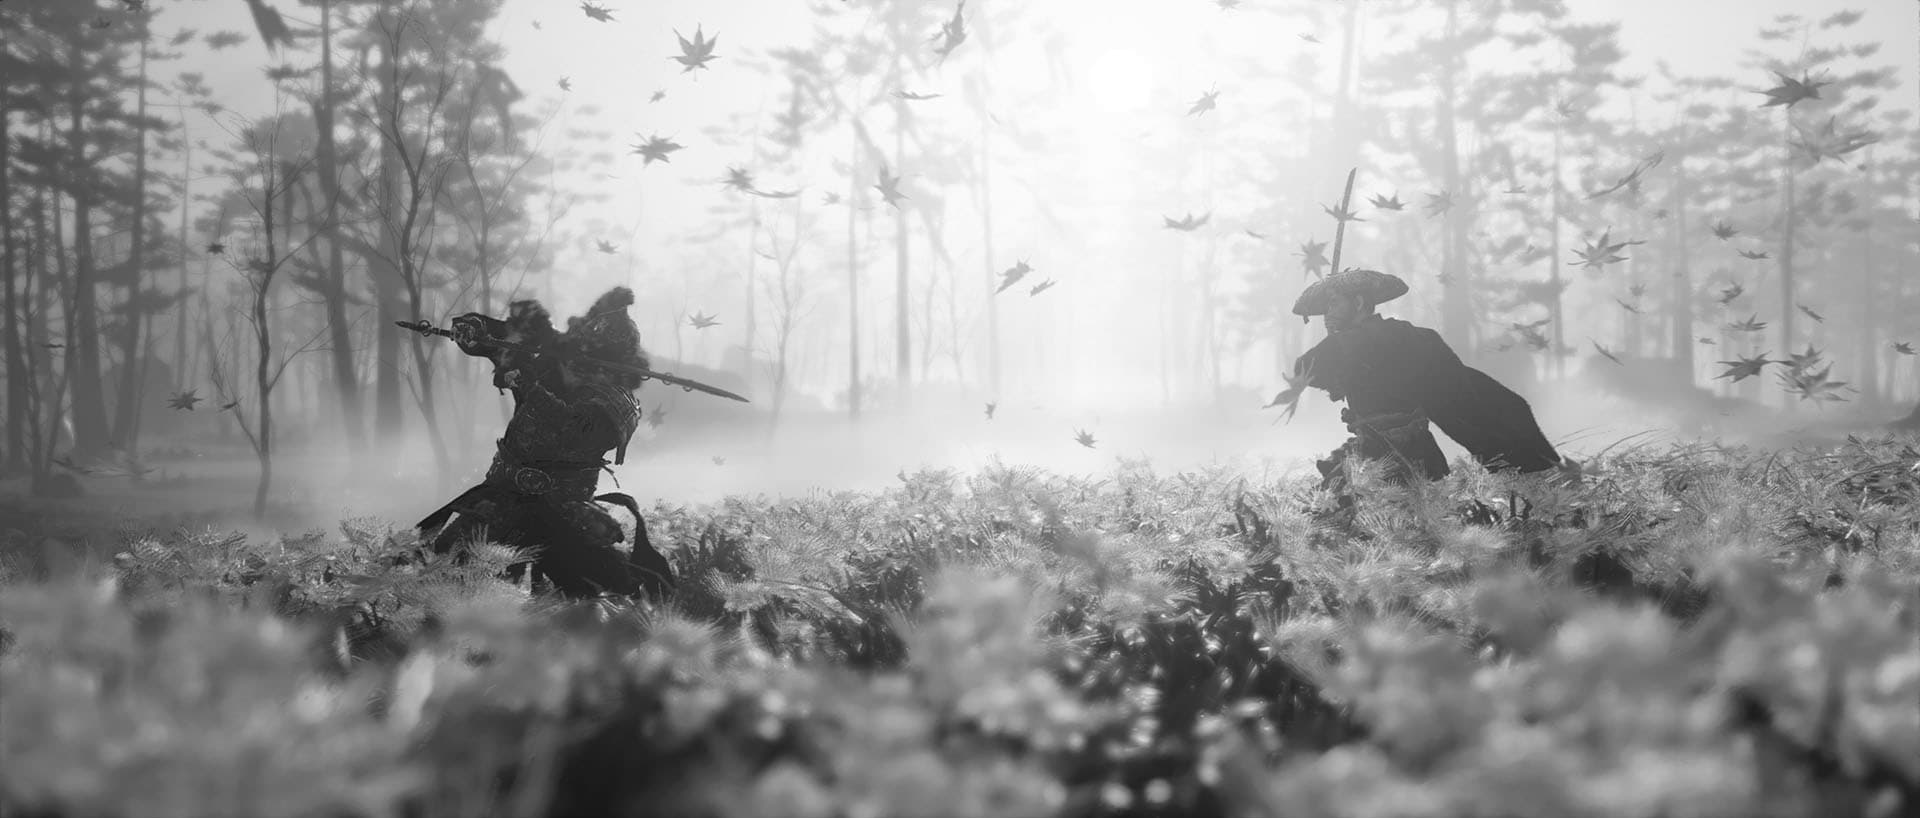 Kurosawa Mode in Ghost of Tsushima